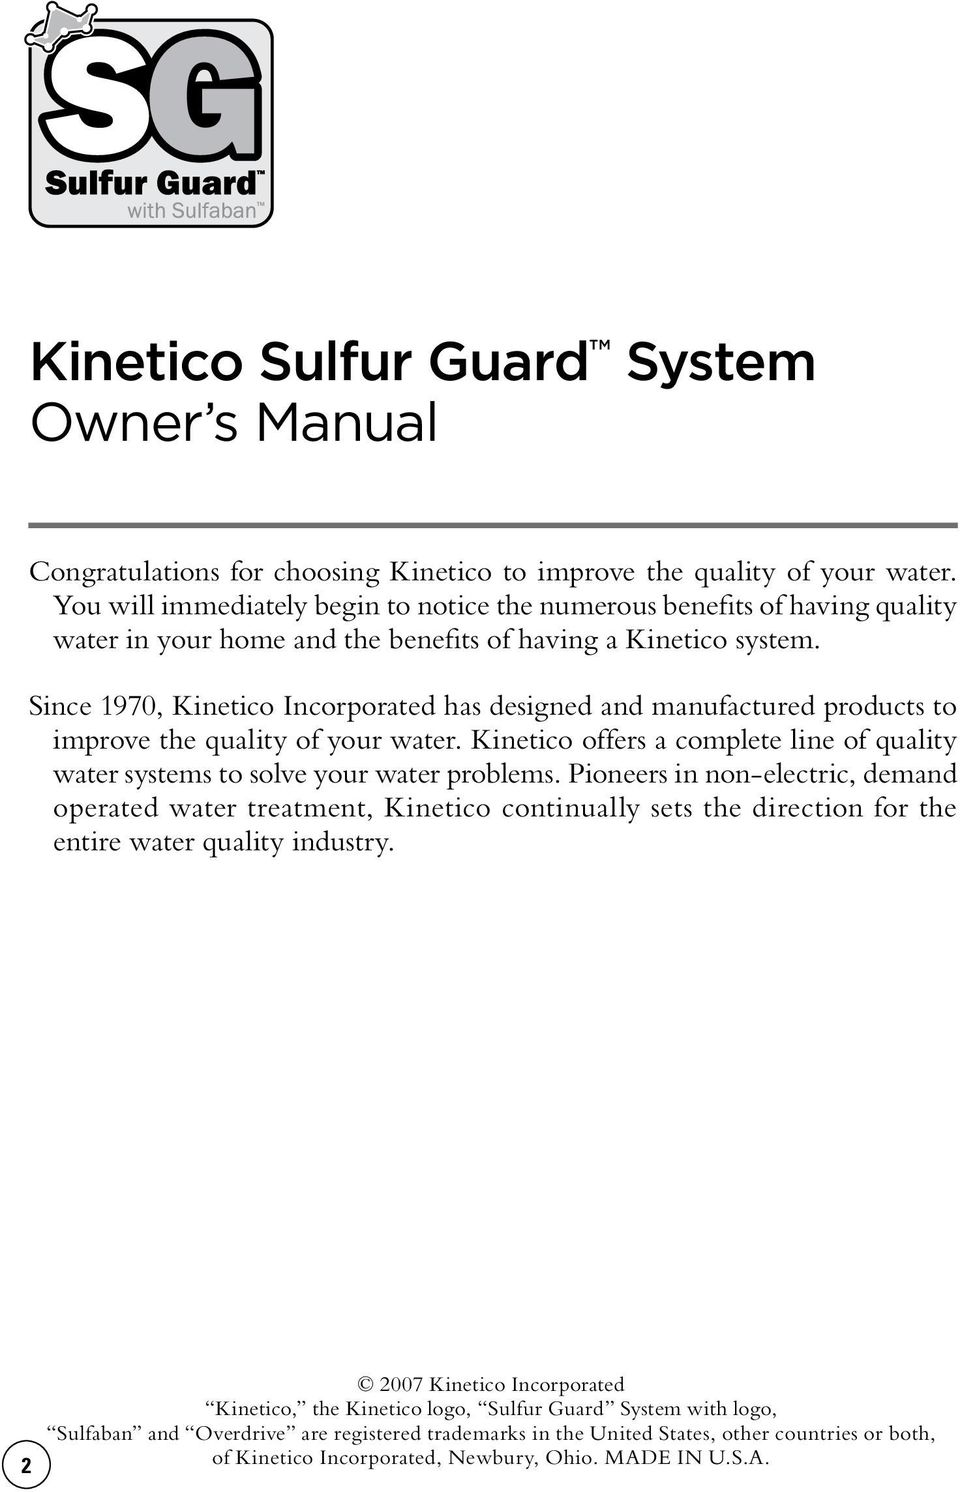 Since 1970, Kinetico Incorporated has designed and manufactured products to improve the quality of your water. Kinetico offers a complete line of quality water systems to solve your water problems.